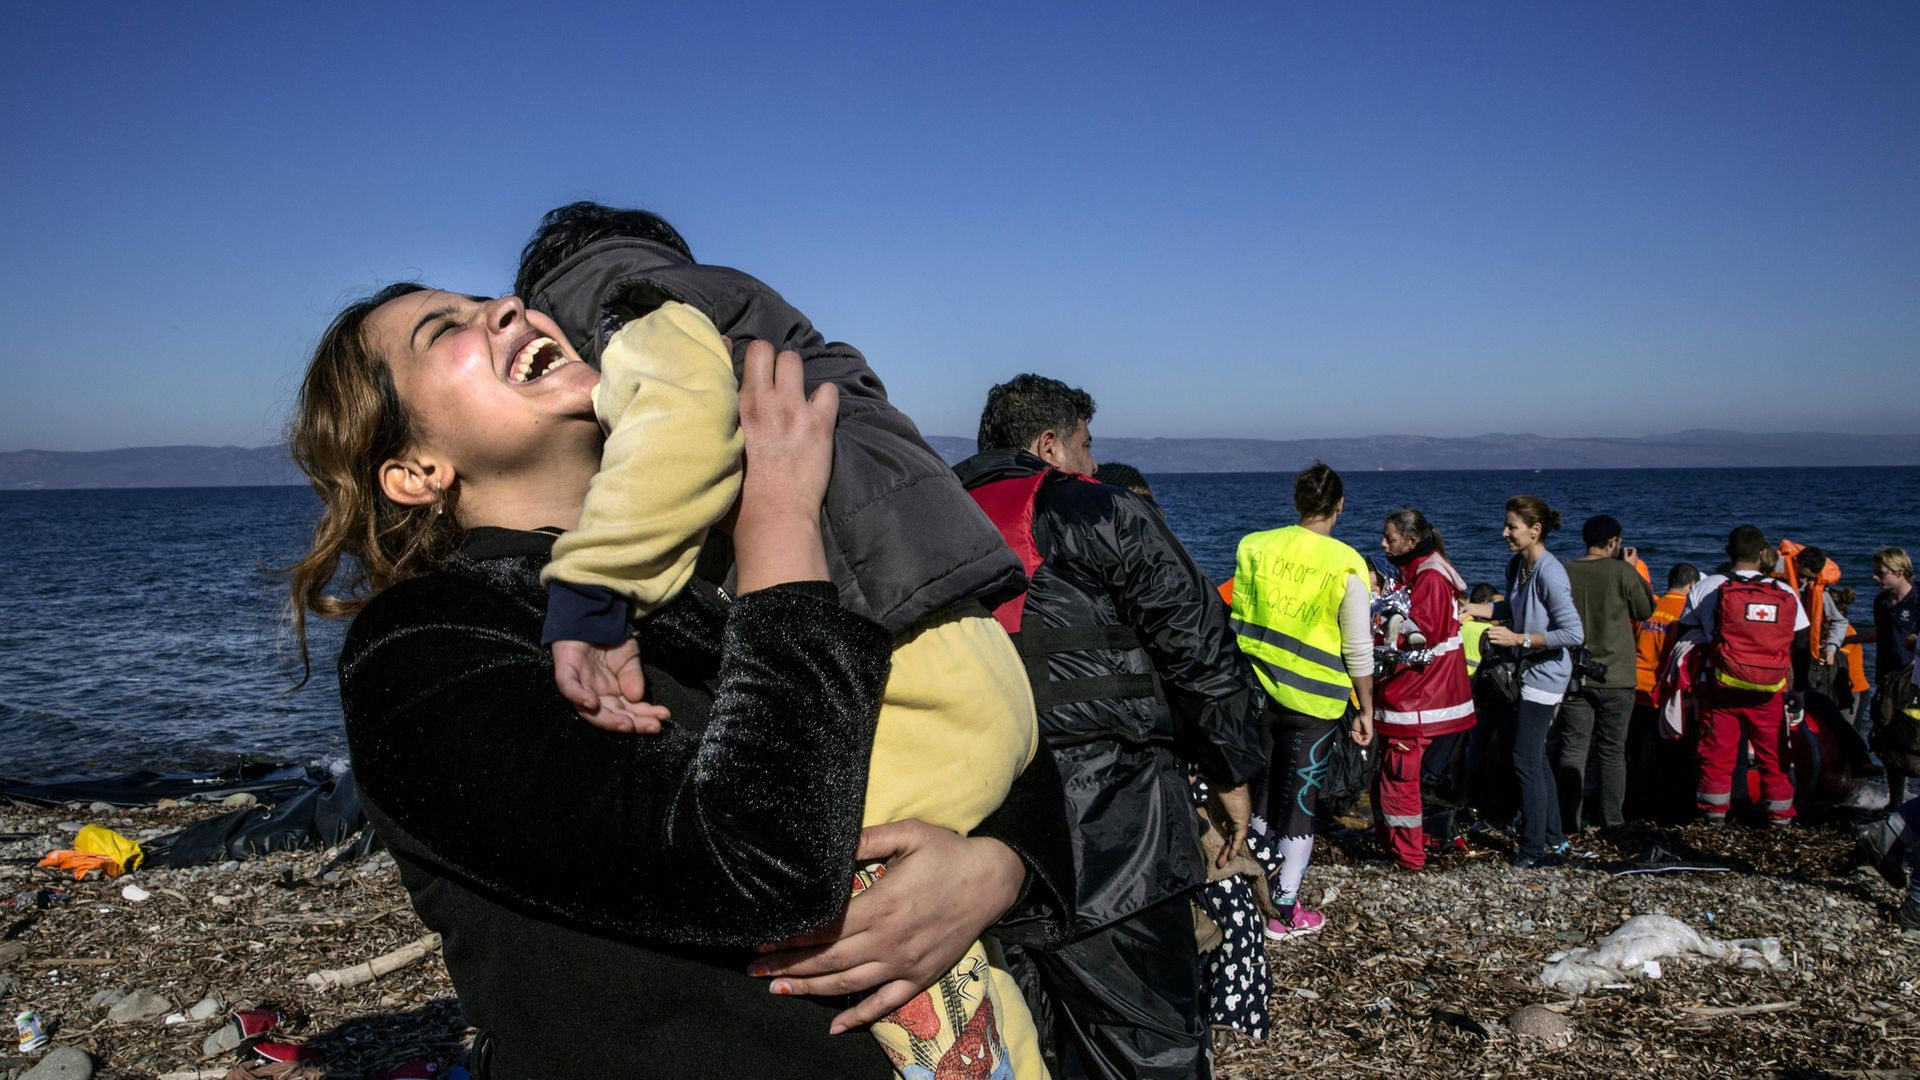 A Syrian refugee rejoices after arriving on an overcrowded raft to the island of Lesbos, Greece, in 2015 - Credit: Getty Images